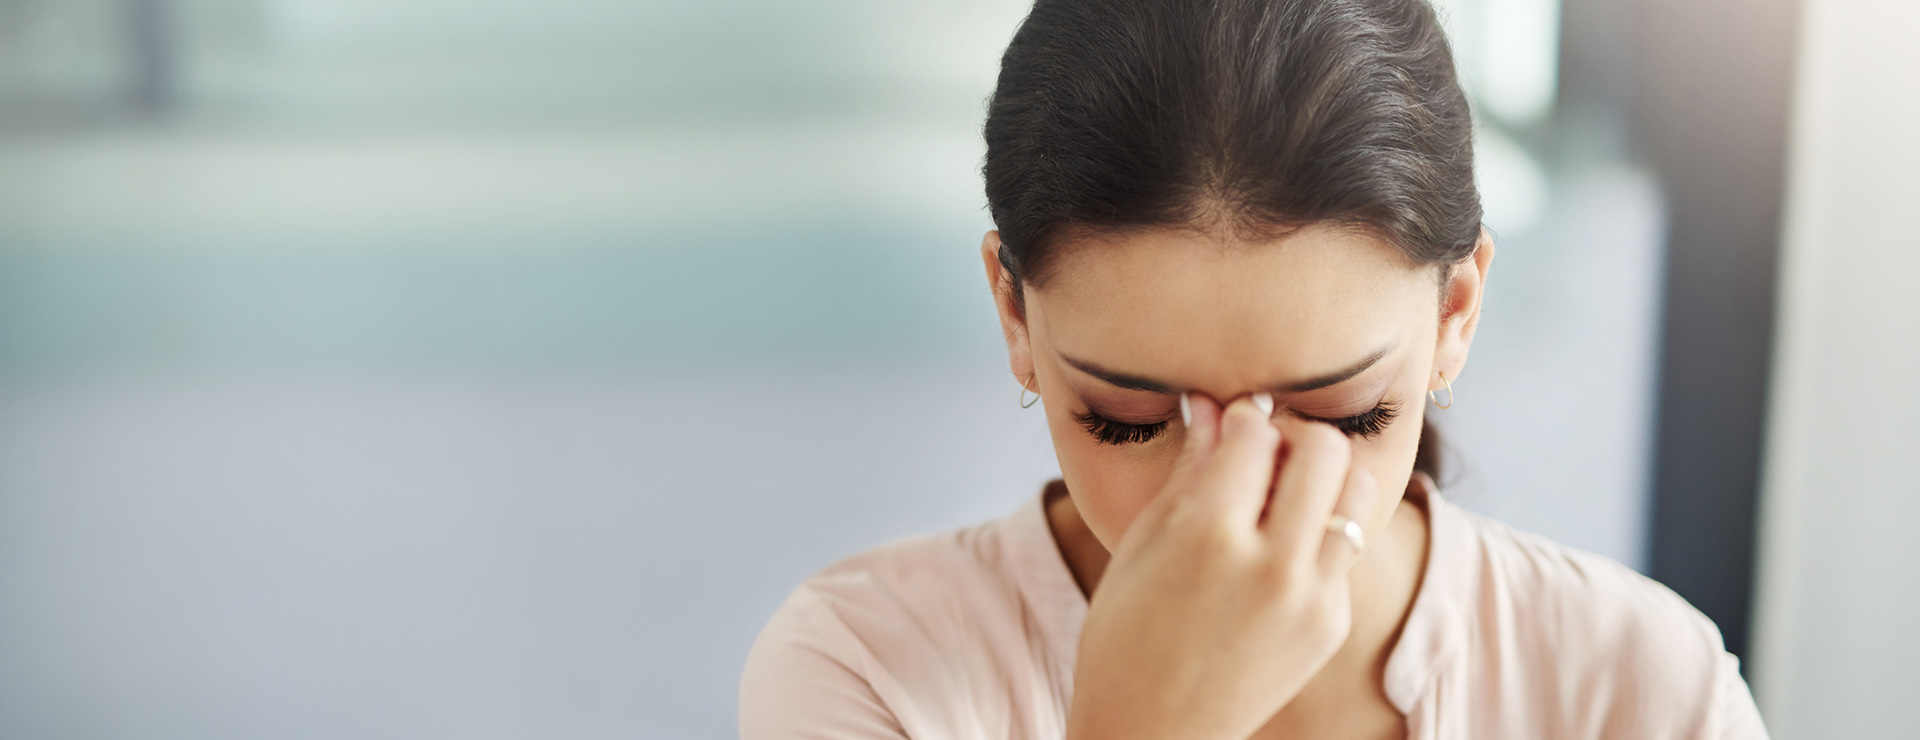 Headaches and Women: What Do Hormones Have to Do With It